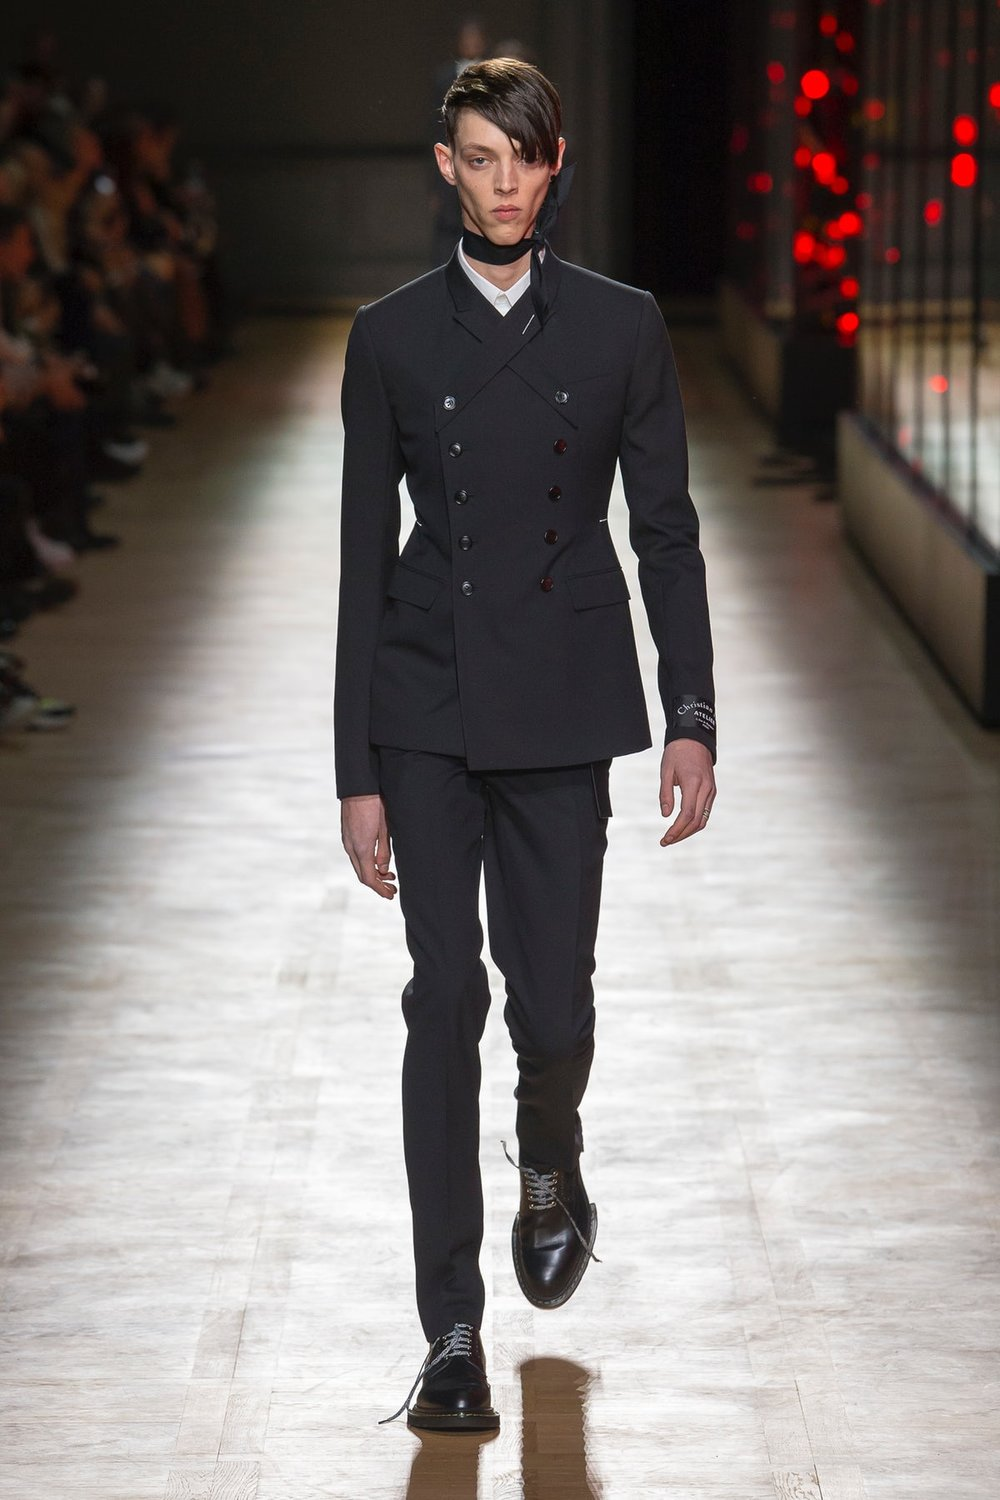 dior_homme_look_4_menswear_autumn_2018.jpeg